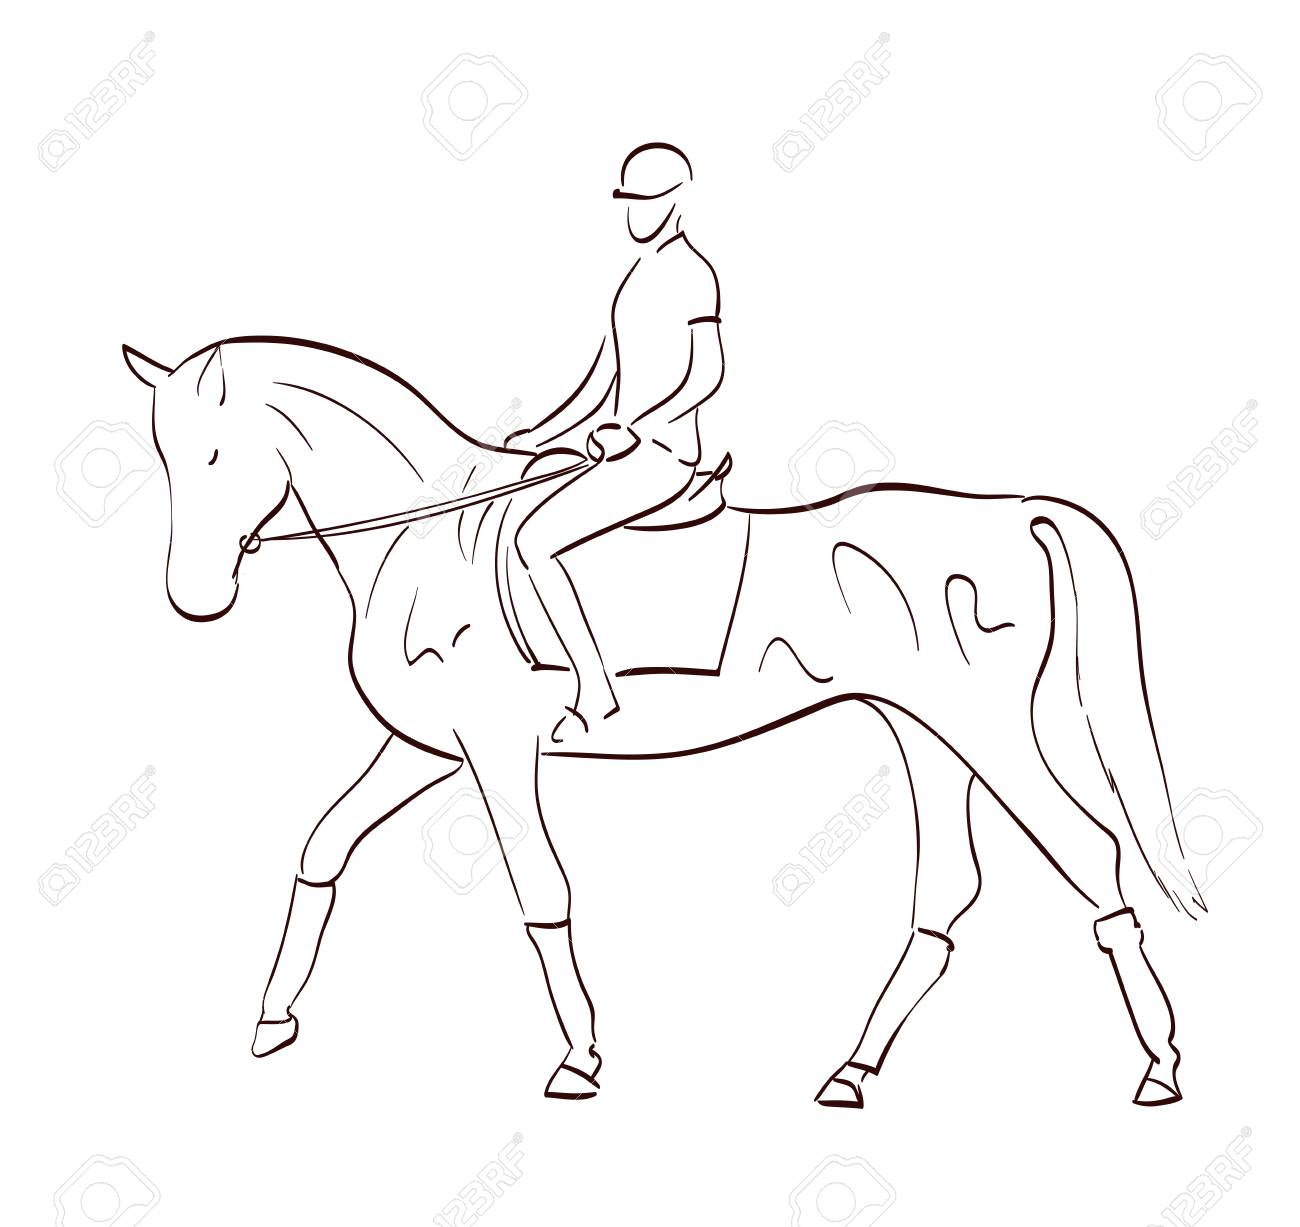 Riding A Horse Vector Illustration In Line Art Style Equestrian Royalty Free Cliparts Vectors And Stock Illustration Image 85421499